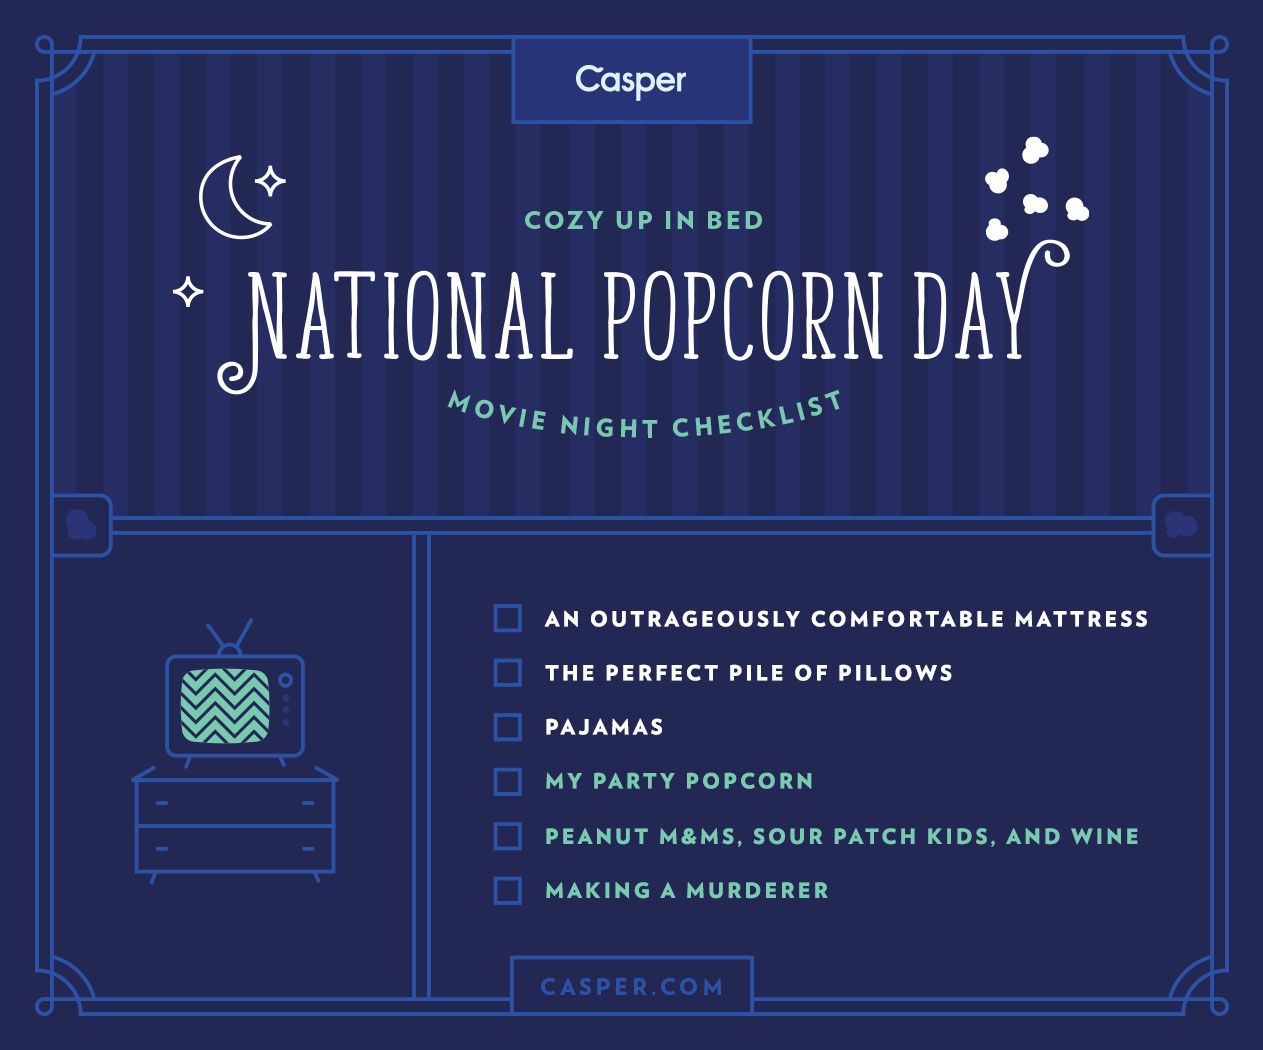 National Popcorn Day With Casper